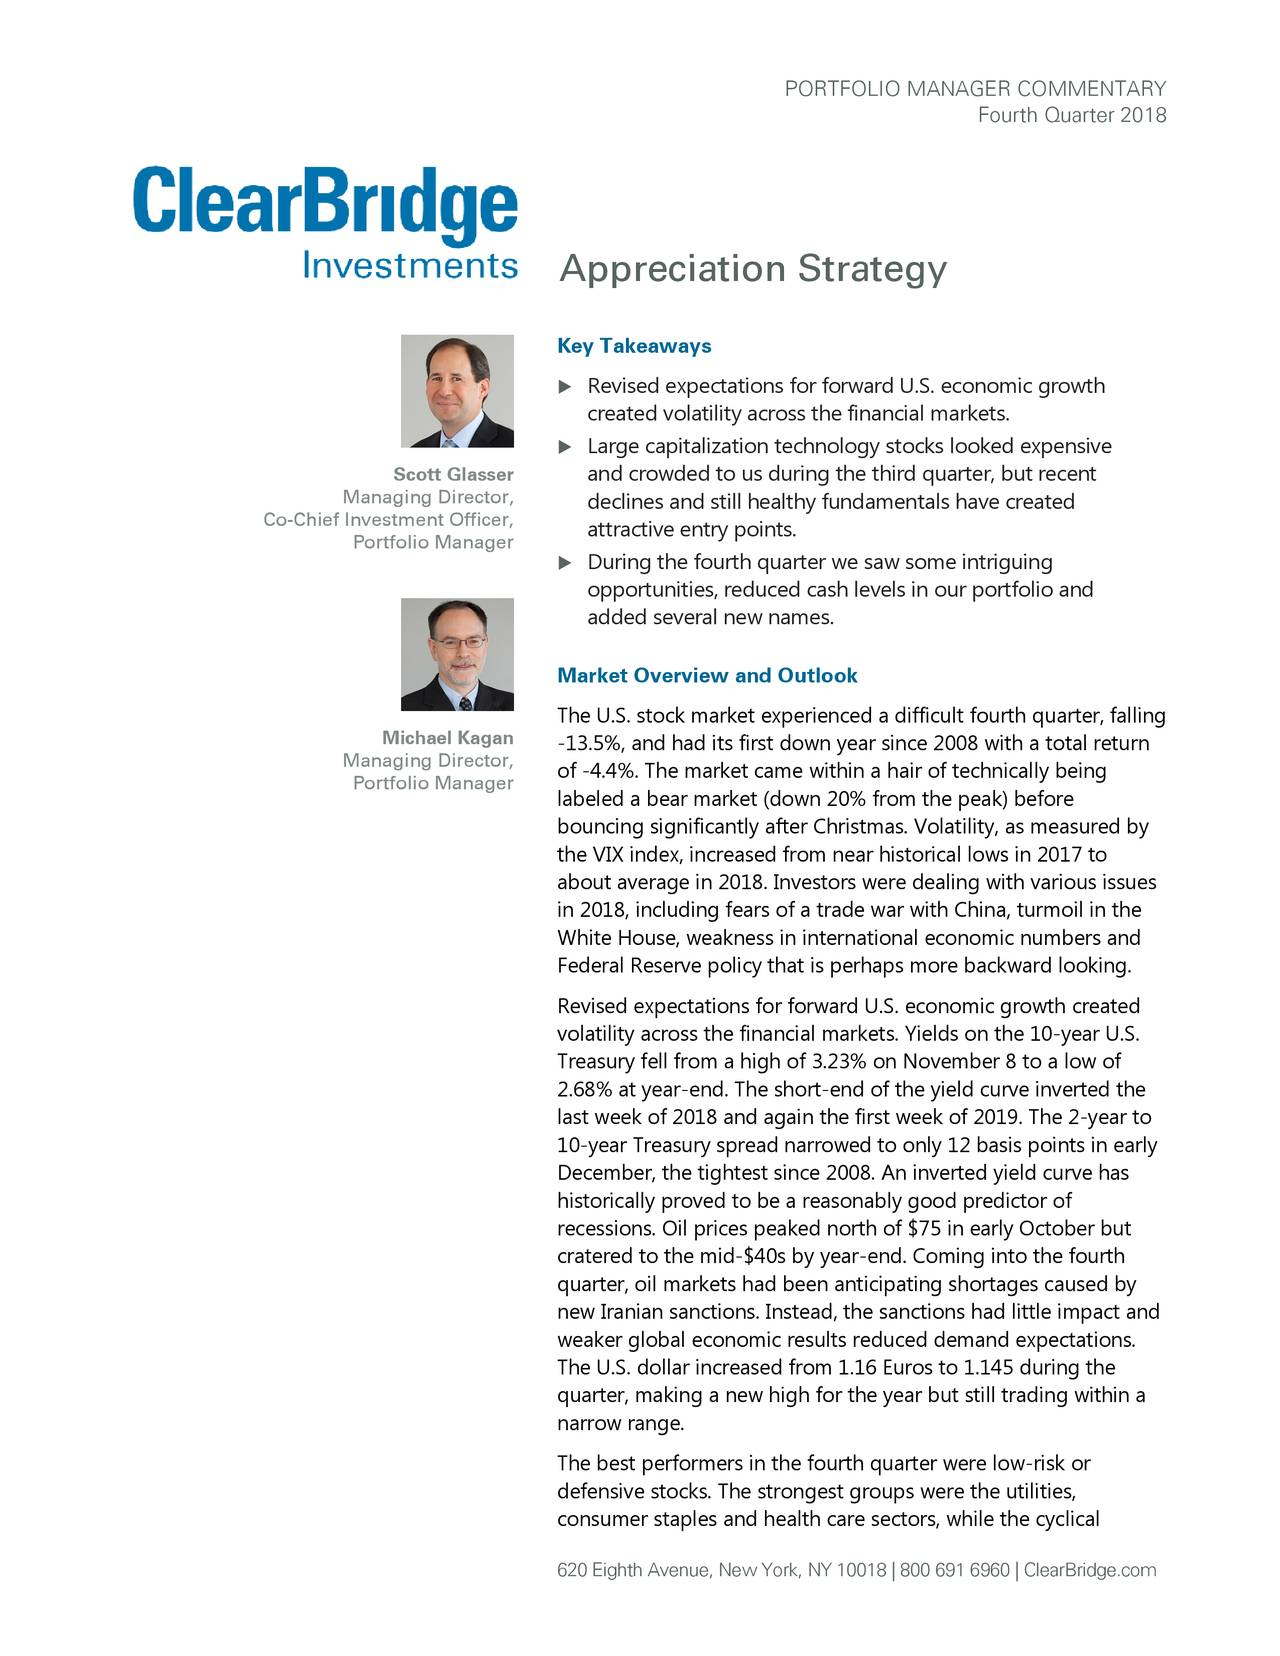 Fourth Quarter 2018 Appreciation Strategy Key Takeaways  Revised expectations for forward U.S. economic growth created volatility across the financial markets.  Large capitalization technology stocks looked expensive Scott Glasser and crowded to us during the third quarter, but recent Managing Director, declines and still healthy fundamentals have created Co-Chief Investment Officer, Portfolio Manager attractive entry points.  During the fourth quarter we saw some intriguing opportunities, reduced cash levels in our portfolio and added several new names. Market Overview and Outlook The U.S. stock market experienced a difficult fourth quarter, falling Michael Kagan -13.5%, and had its first down year since 2008 with a total return Managing Director, of -4.4%. The market came within a hair of technically being Portfolio Manager labeled a bear market (down 20% from the peak) before bouncing significantly after Christmas. Volatility, as measured by the VIX index, increased from near historical lows in 2017 to about average in 2018. Investors were dealing with various issues in 2018, including fears of a trade war with China, turmoil in the White House, weakness in international economic numbers and Federal Reserve policy that is perhaps more backward looking. Revised expectations for forward U.S. economic growth created volatility across the financial markets. Yields on the 10-year U.S. Treasury fell from a high of 3.23% on November 8 to a low of 2.68% at year-end. The short-end of the yield curve inverted the last week of 2018 and again the first week of 2019. The 2-year to 10-year Treasury spread narrowed to only 12 basis points in early December, the tightest since 2008. An inverted yield curve has historically proved to be a reasonably good predictor of recessions. Oil prices peaked north of $75 in early October but cratered to the mid-$40s by year-end. Coming into the fourth quarter, oil markets had been anticipating shortages caused by new Iranian sanctions. Inste